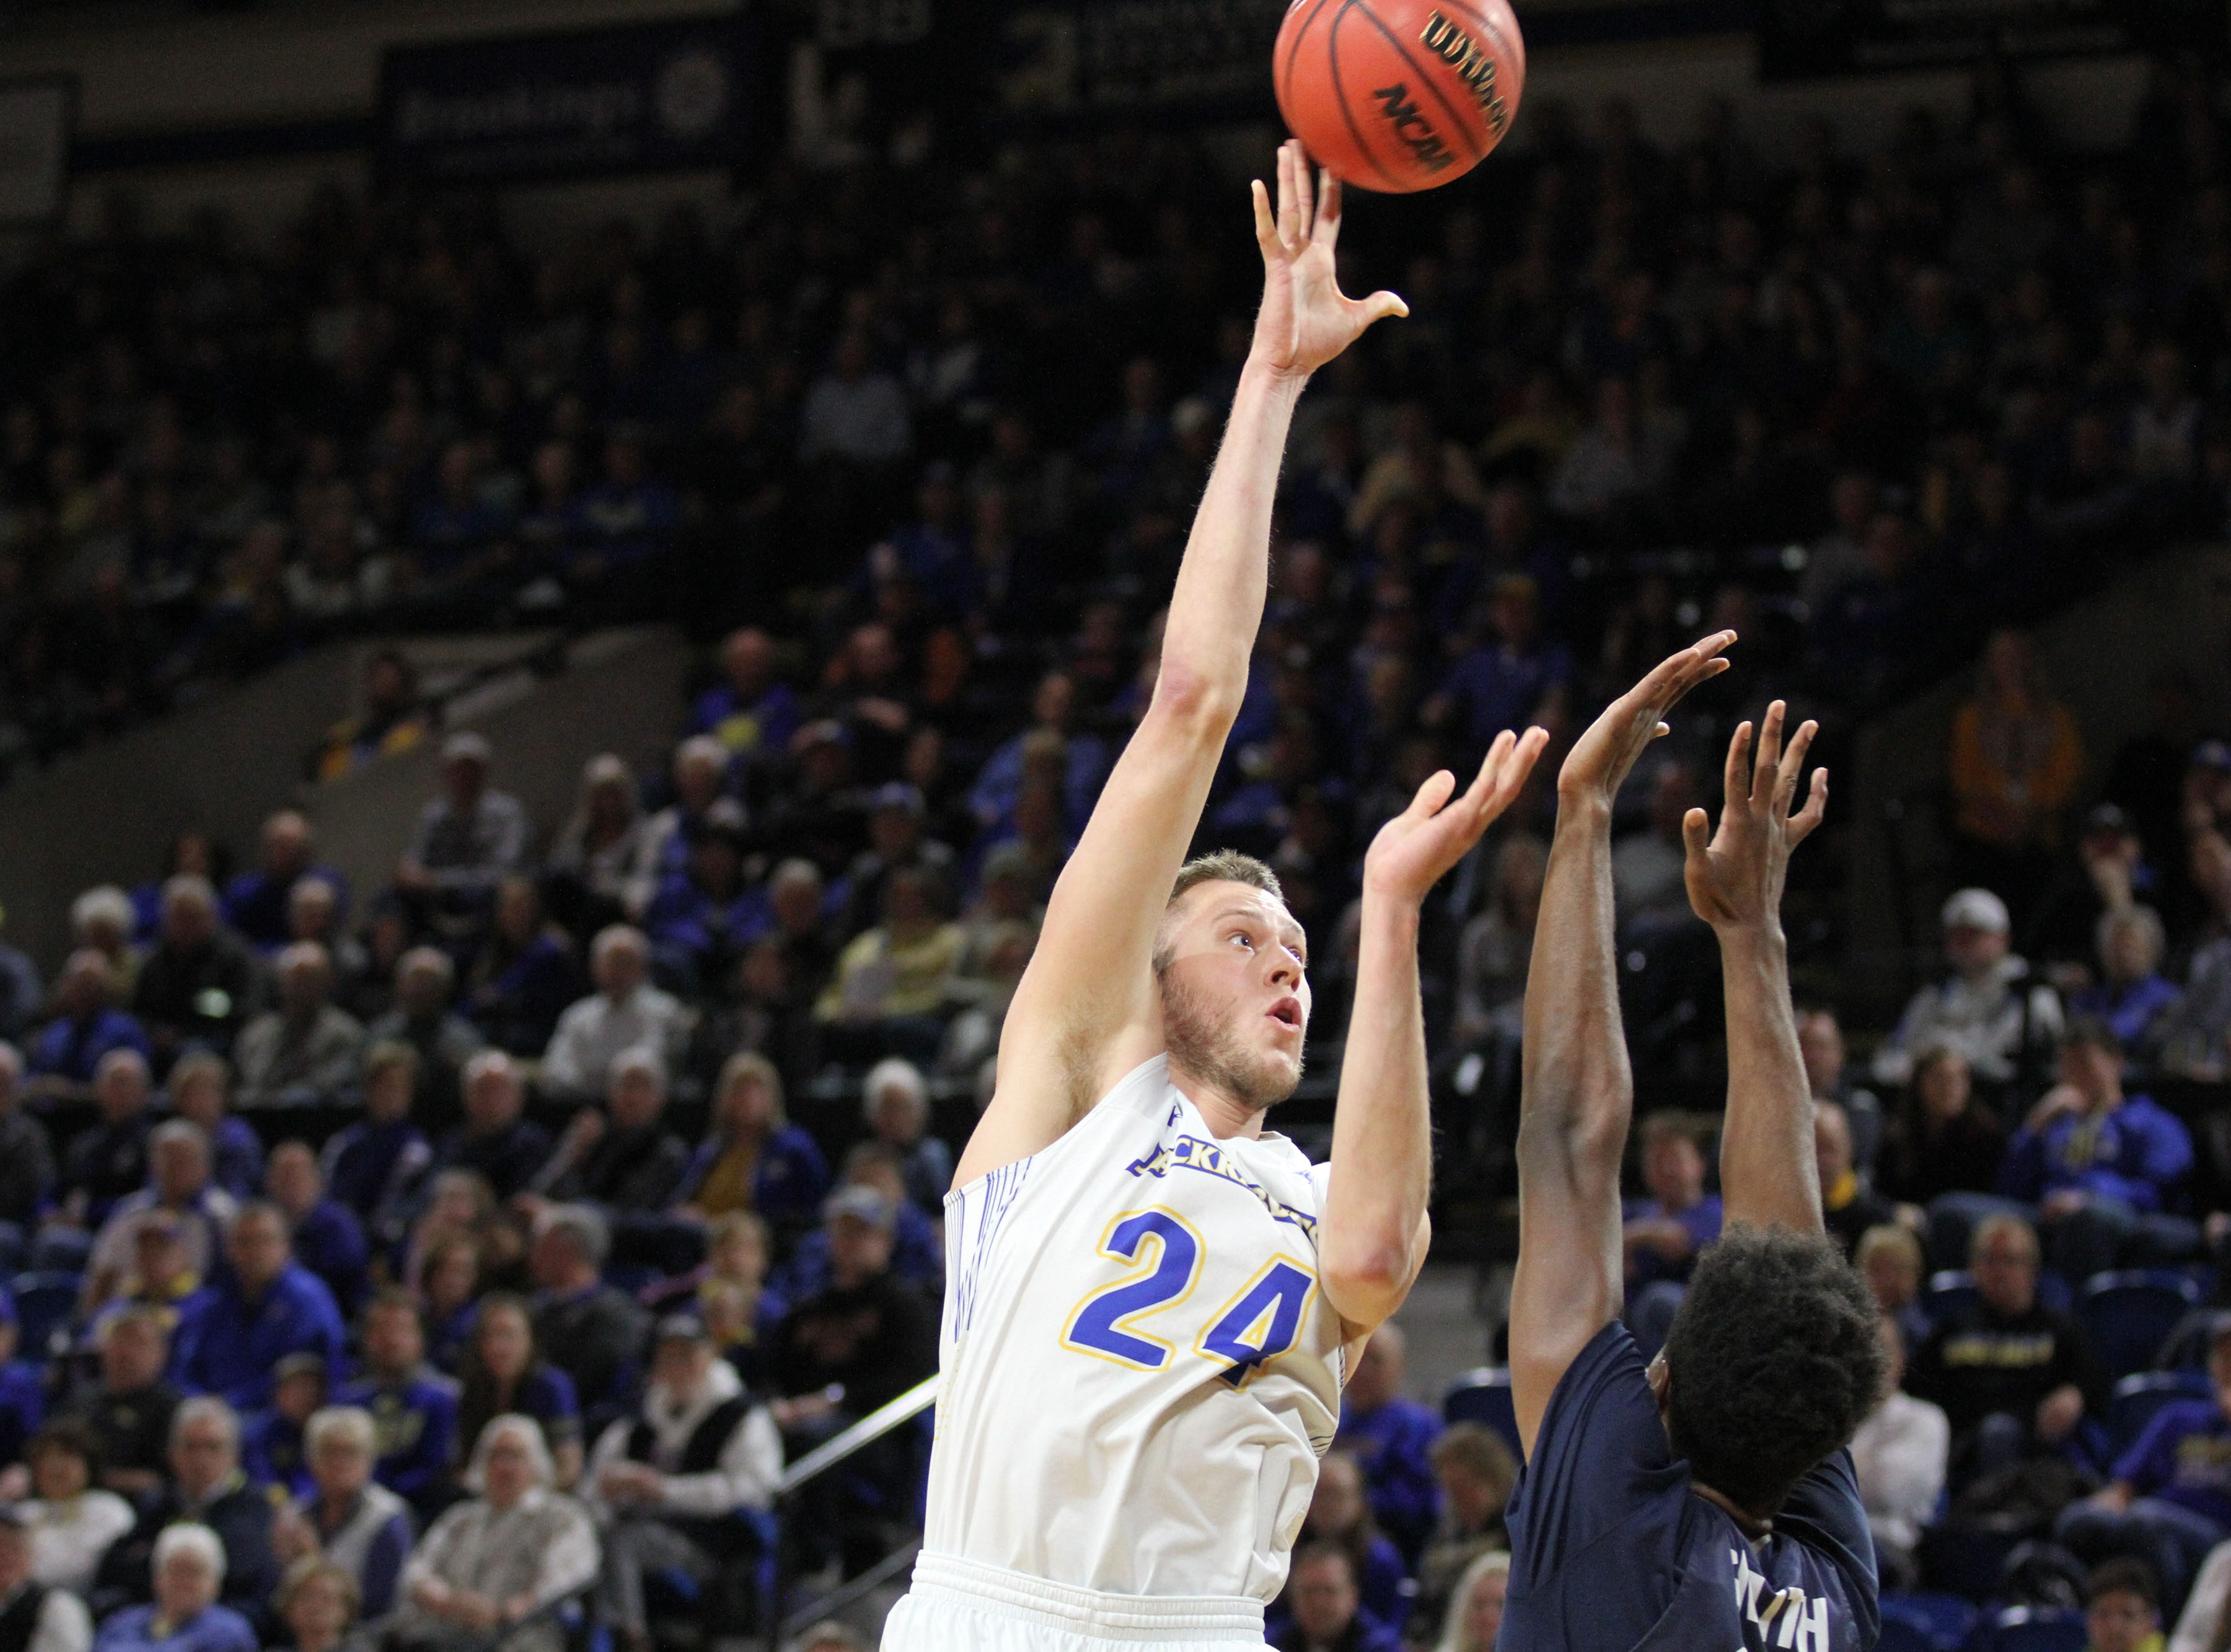 South Dakota State's Mike Daum (24) scores on a jumper over Oral Roberts' Kerwin Smith during the first half of the Jackrabbits' matchup with the Golden Eagles Saturday afternoon at Frost Arena in Brookings.